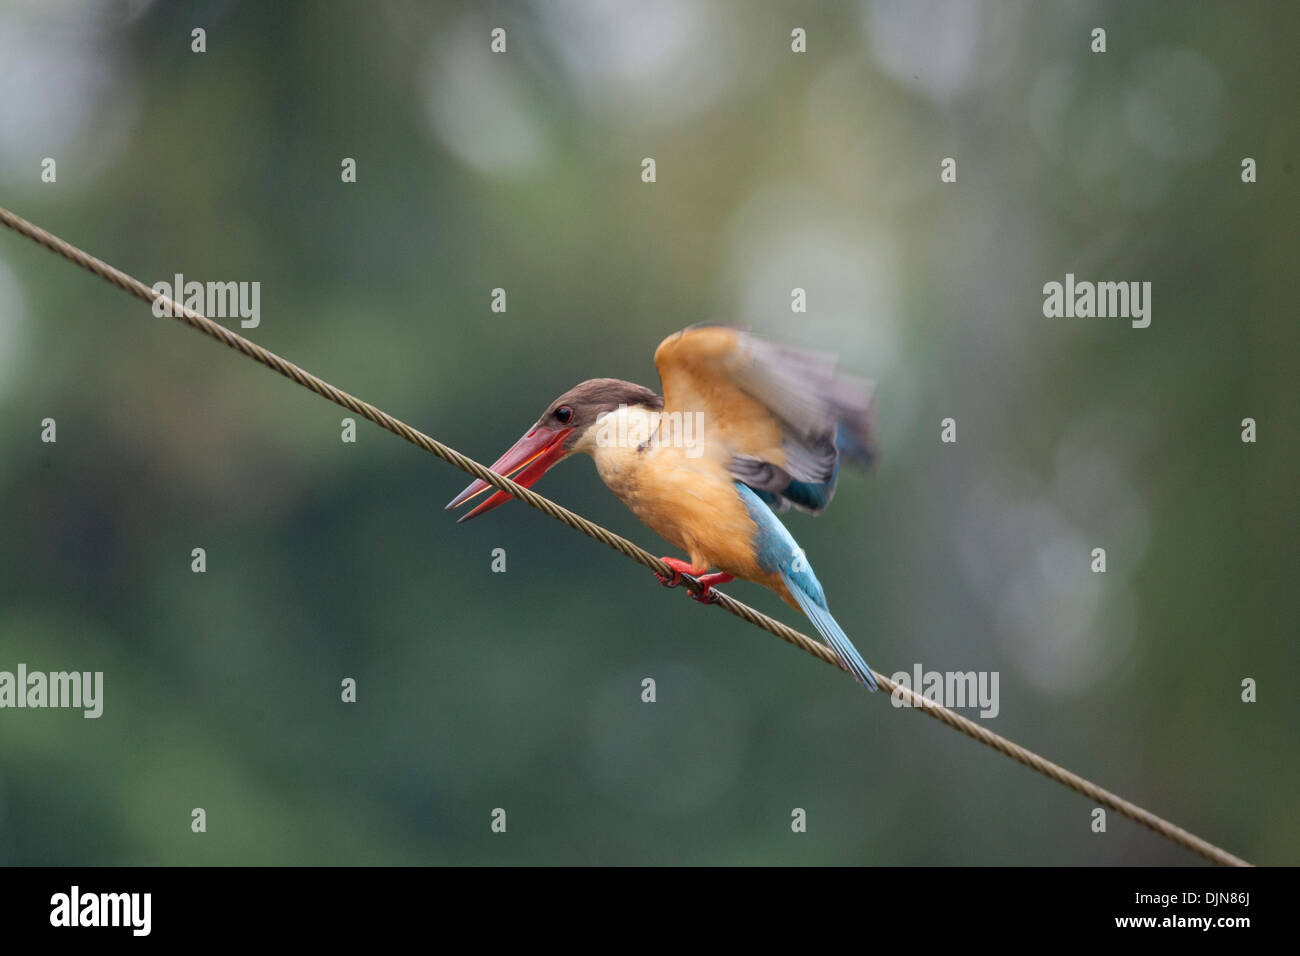 The Stork billed Kingfisher in the monsoons is found inland in the state of Goa, one of the biggest kingfishers bird in India - Stock Image